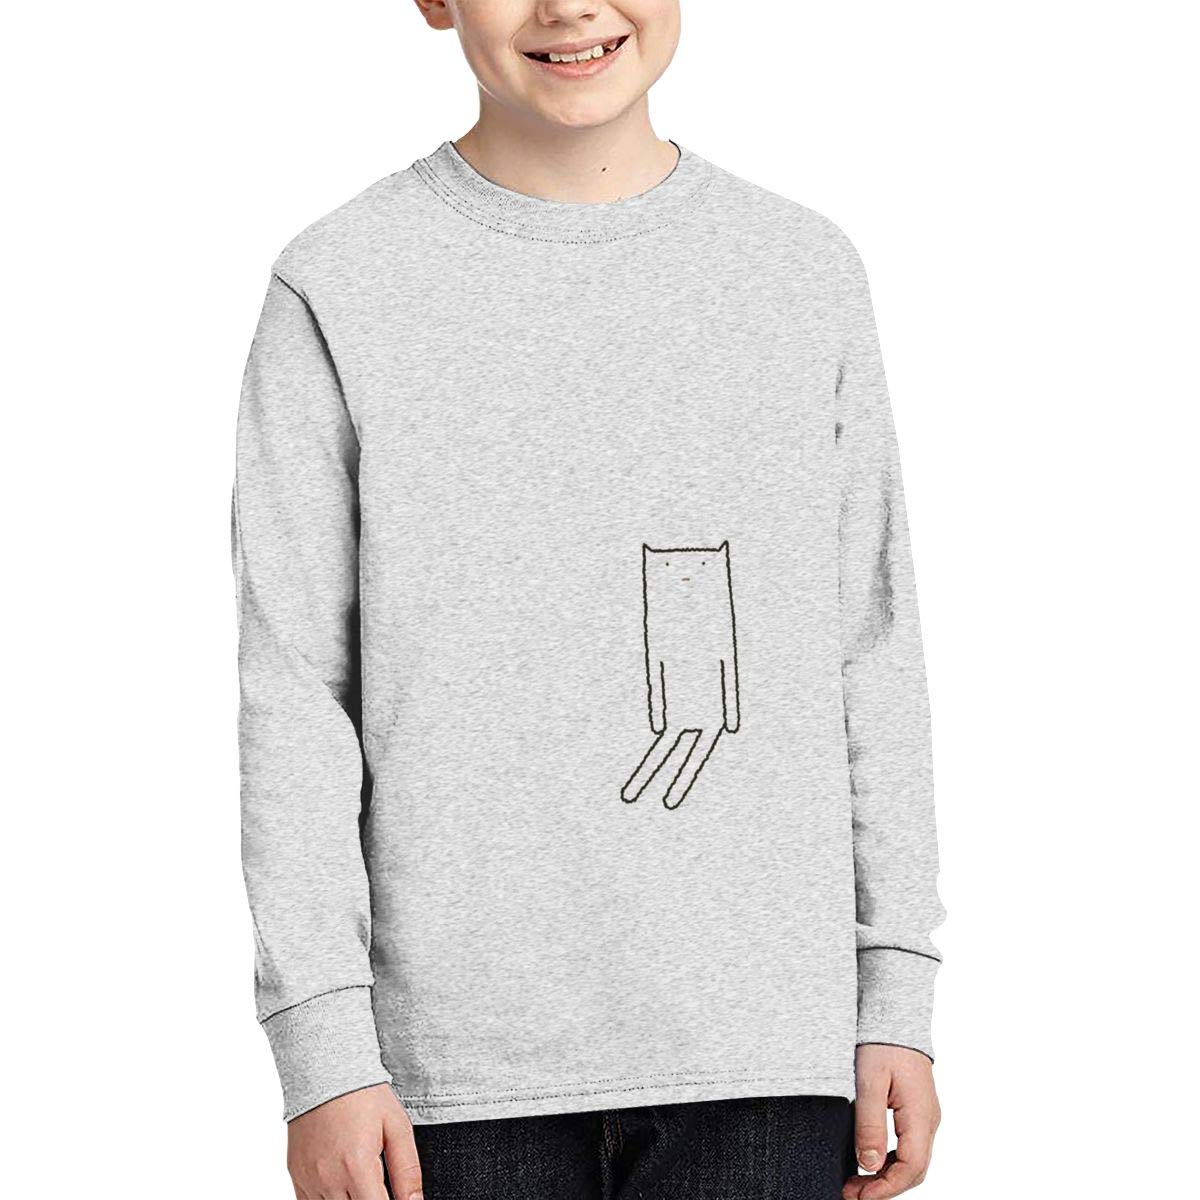 MARRITI Stick Figure Cat Junior Long Sleeve T-Shirt Funny Boys Long Sleeve Round Neck Graphic Tees Black